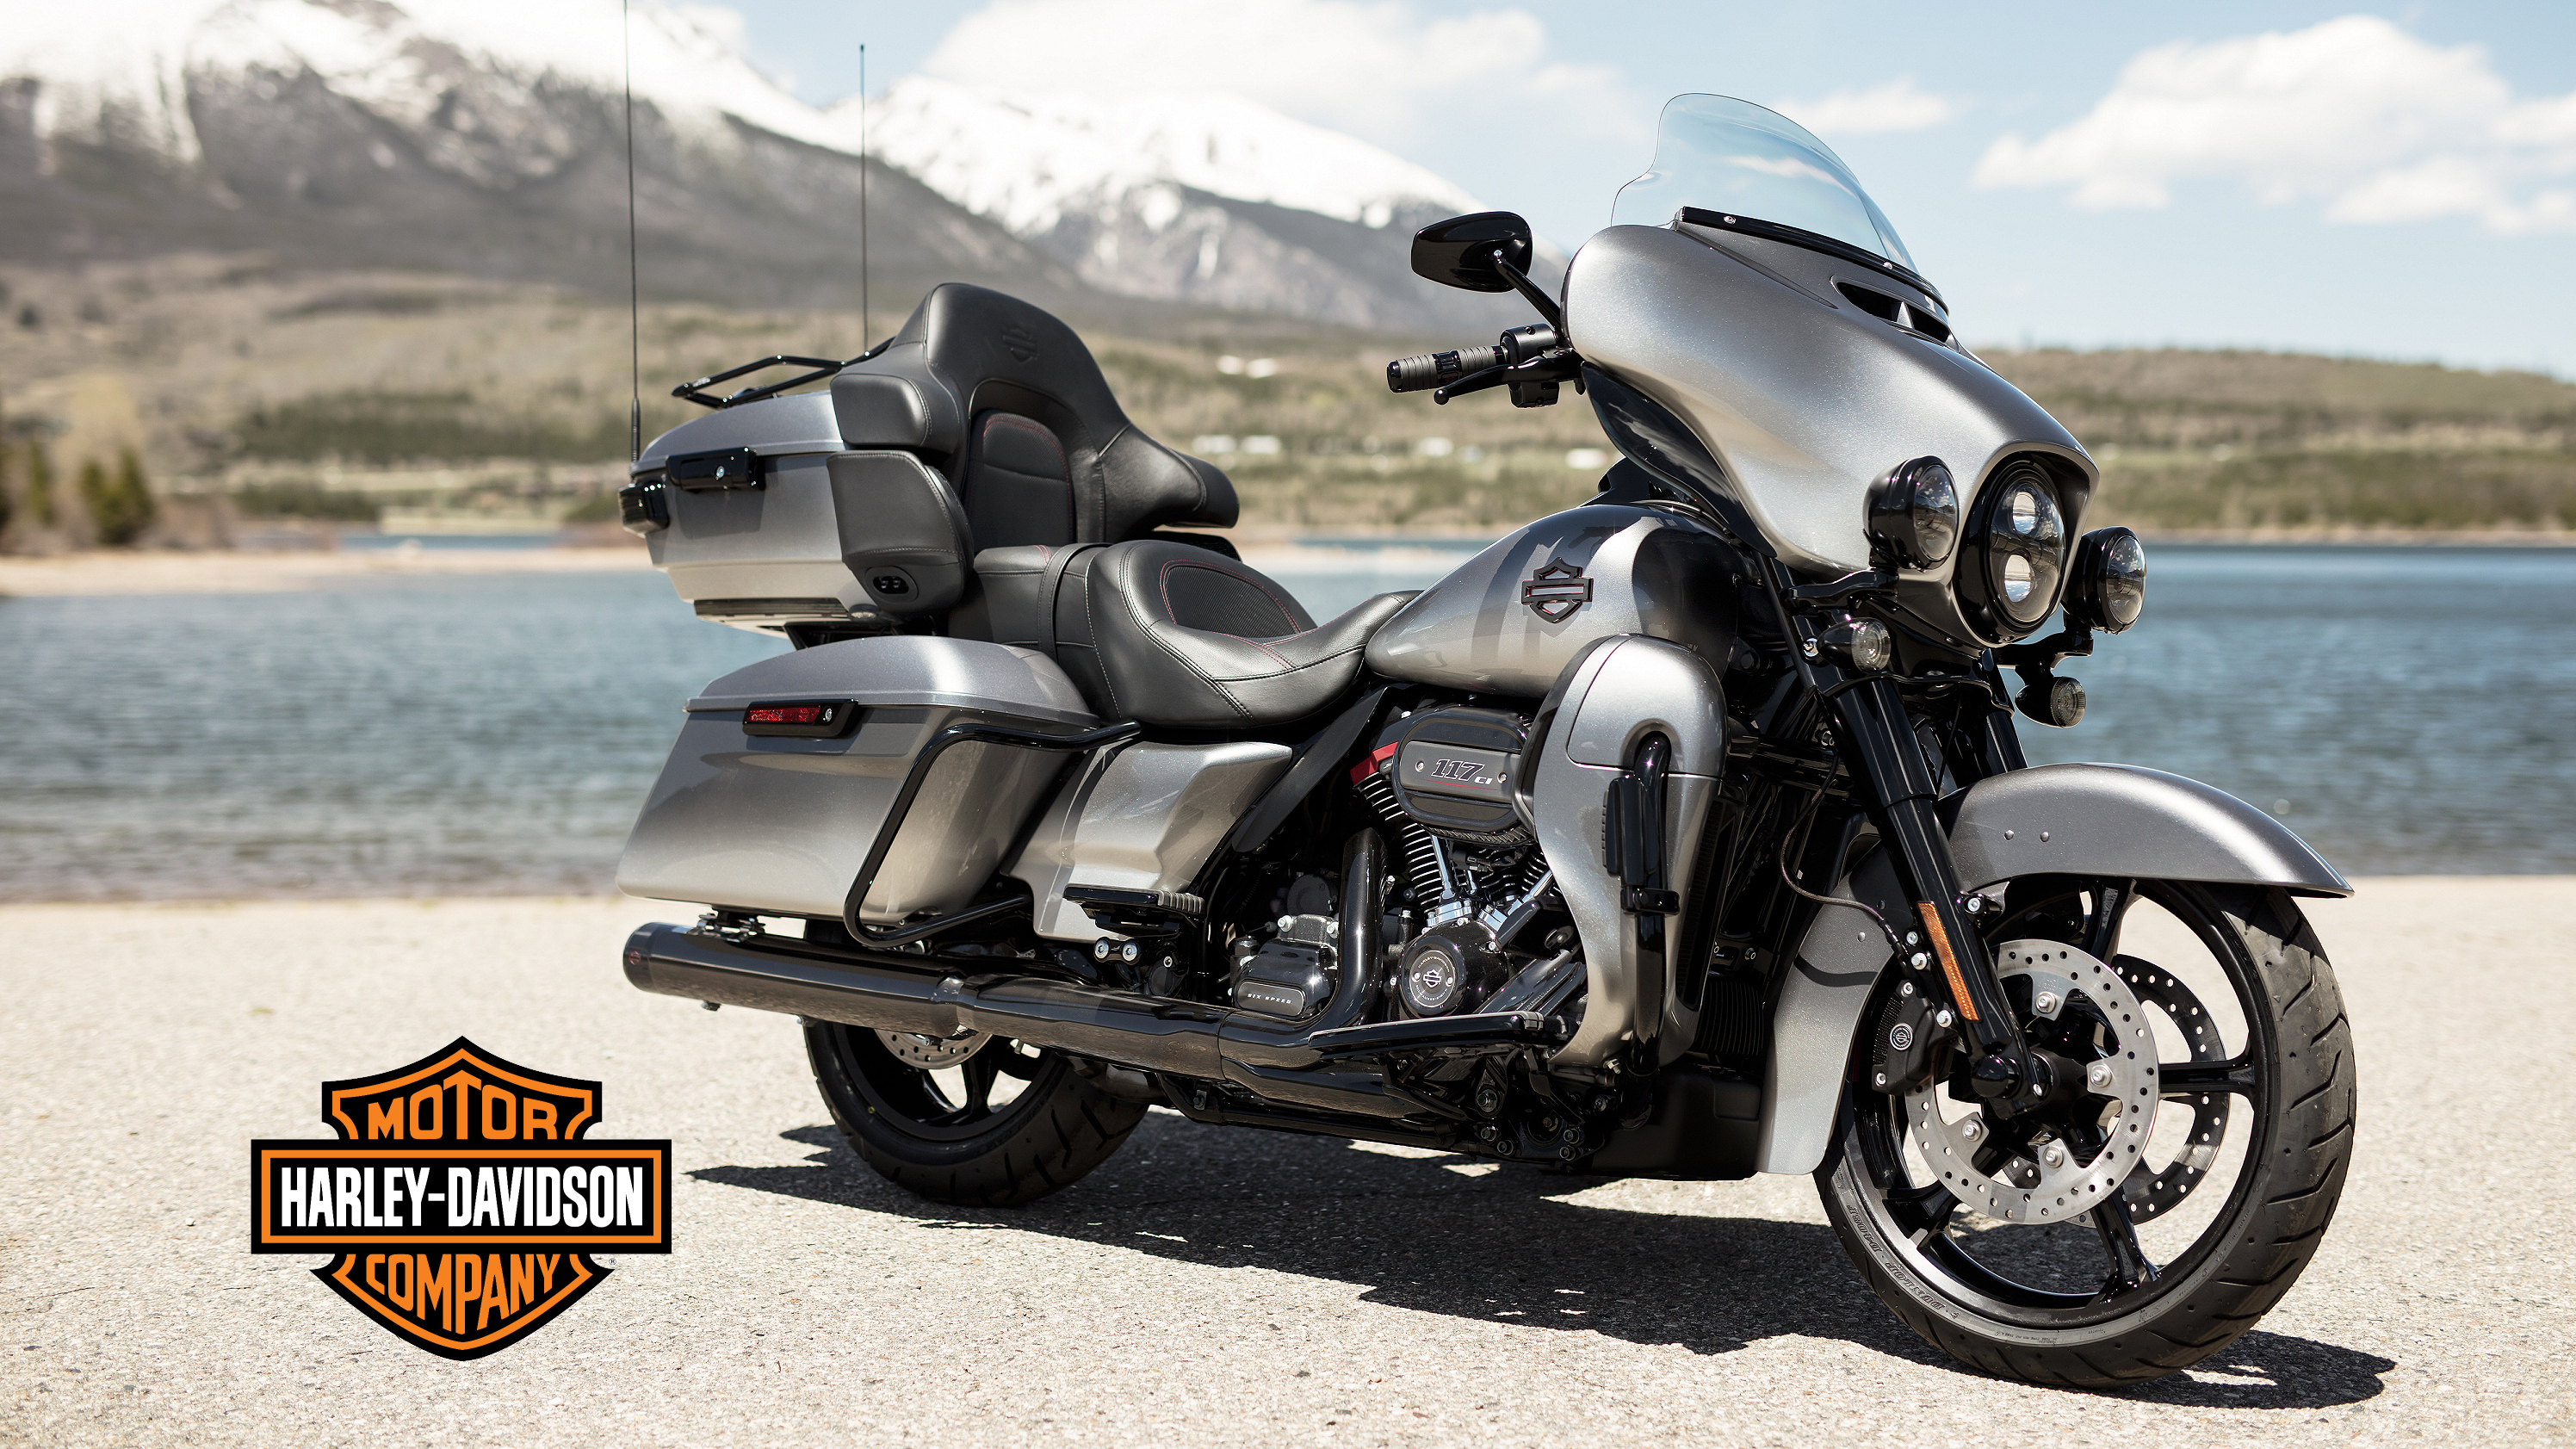 2019 Harley-Davidson CVO Limited | Top Speed